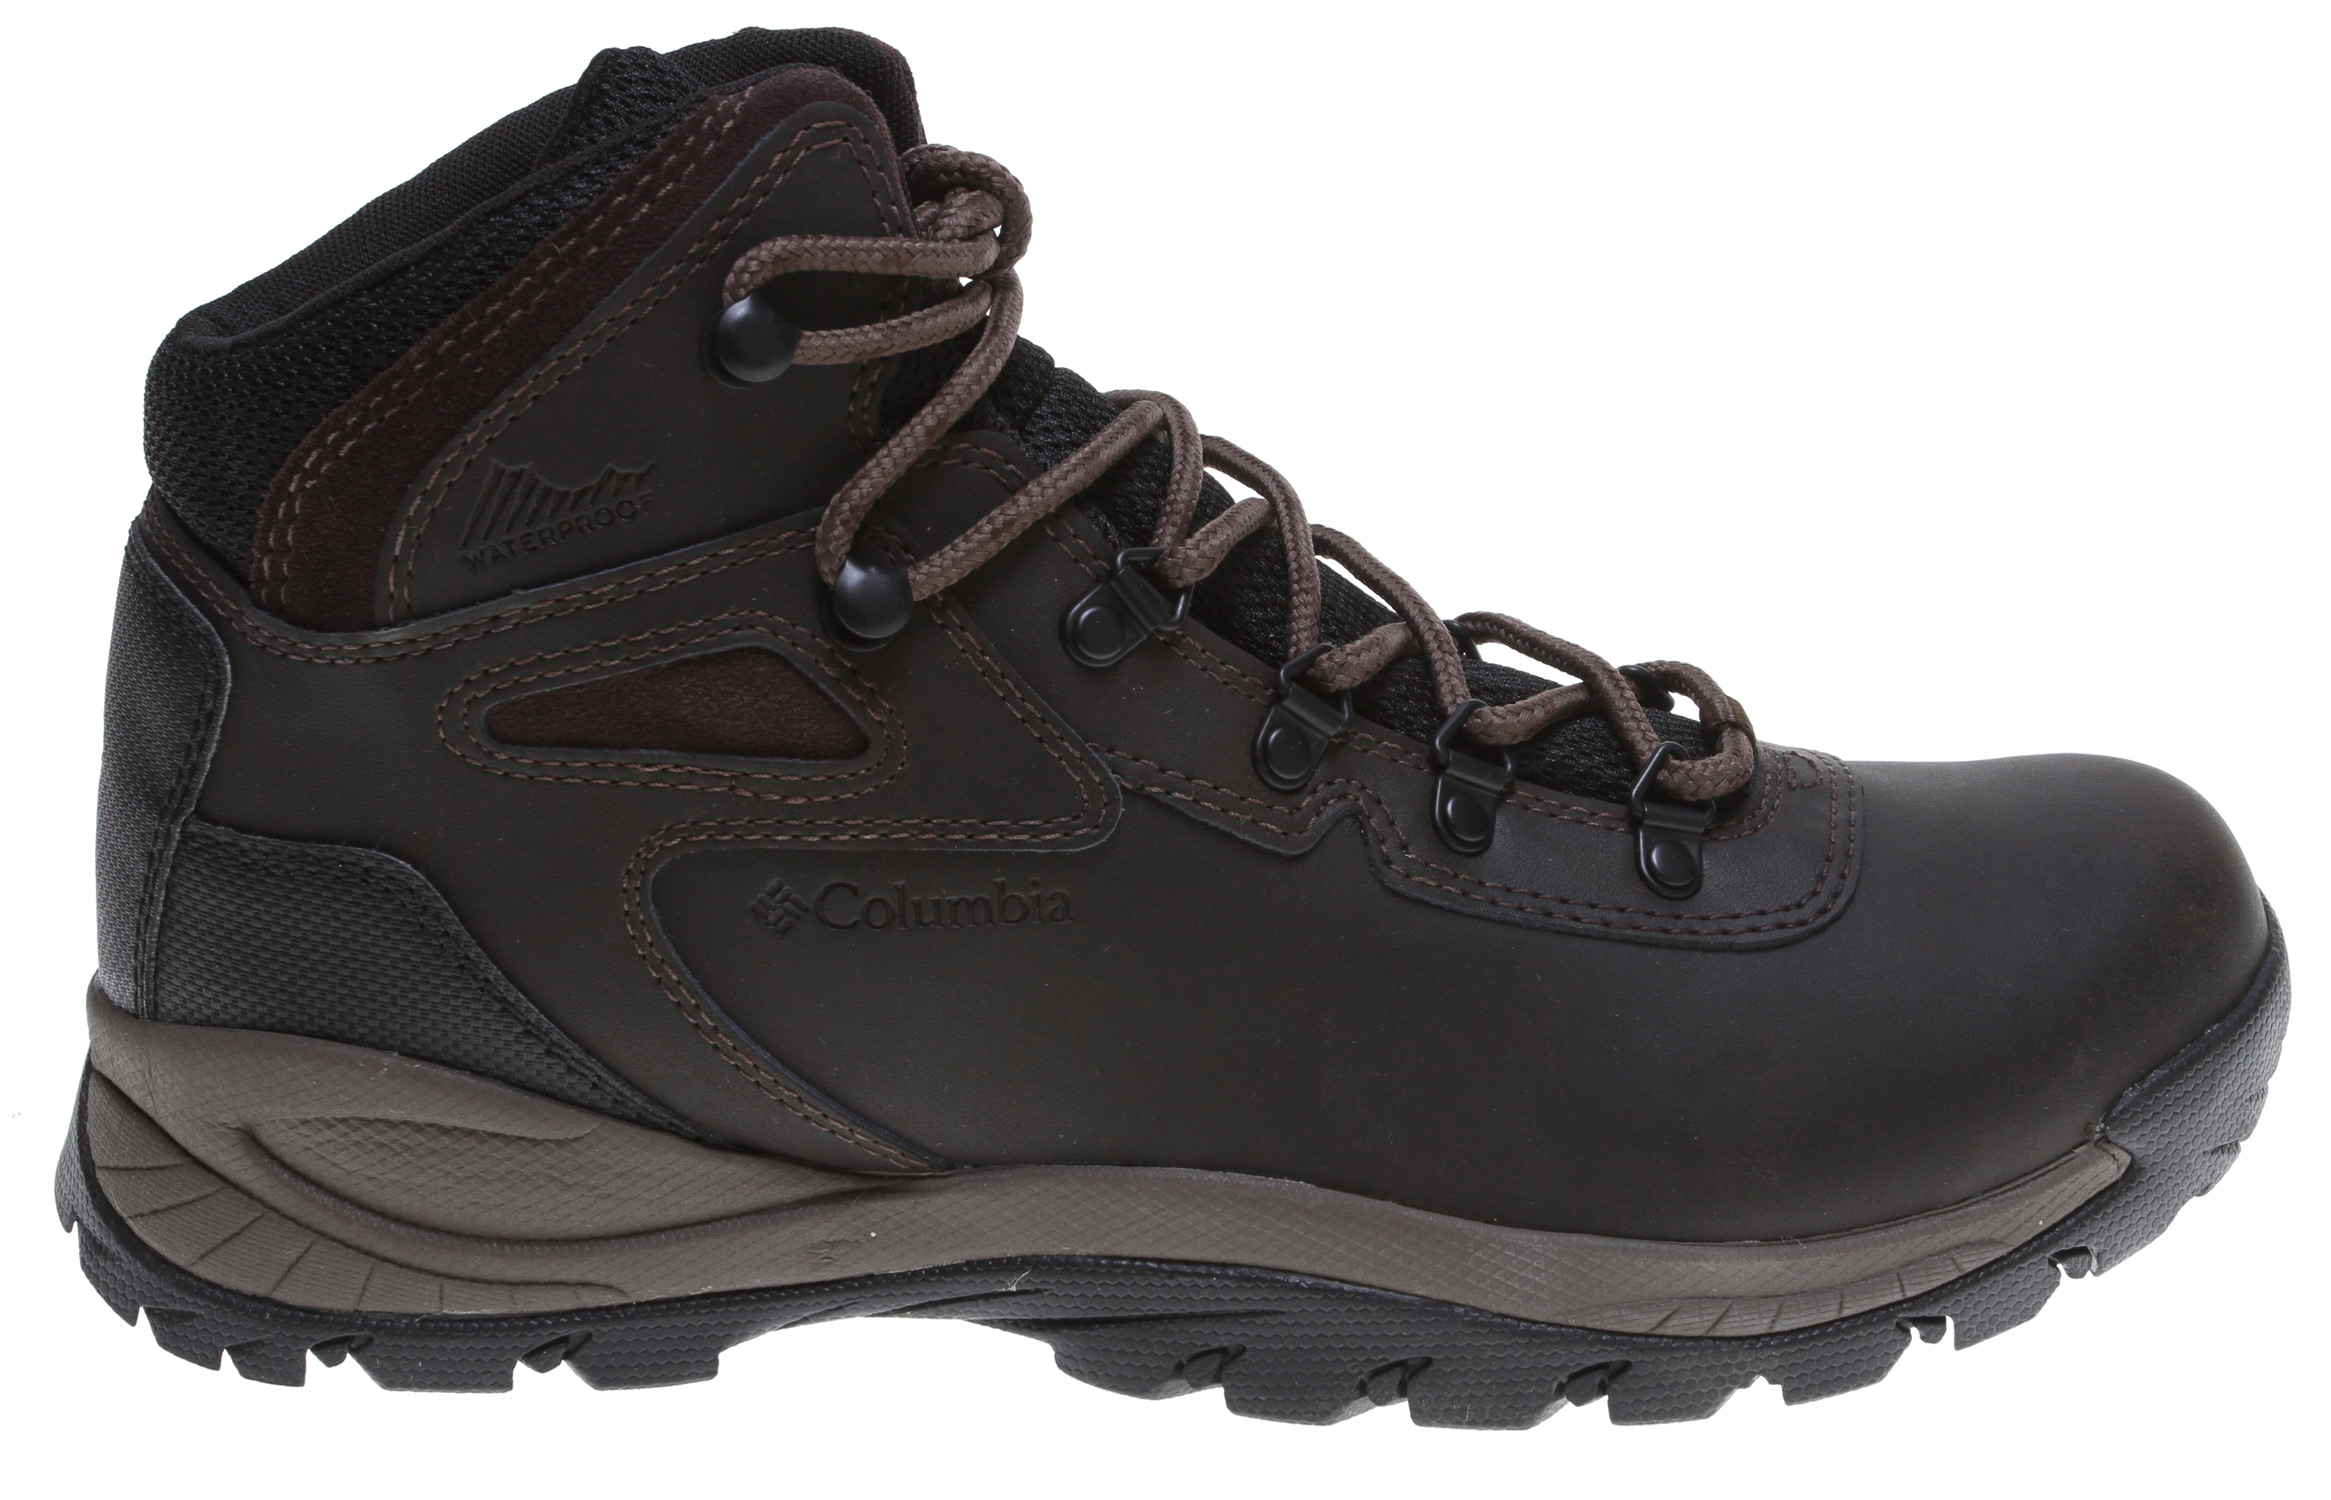 Camp and Hike Supportive and durable hiking boot for those long days on the trail.Key Features of the Columbia Newton Ridge Plus Hiking Boots: Breathable mesh textile Leather upper Waterproof bootie construction Hook and Loop Closure system Midsole: Techlite lightweight cushioned midsole Outsole: Omni-Grip non marking traction rubber - $67.95